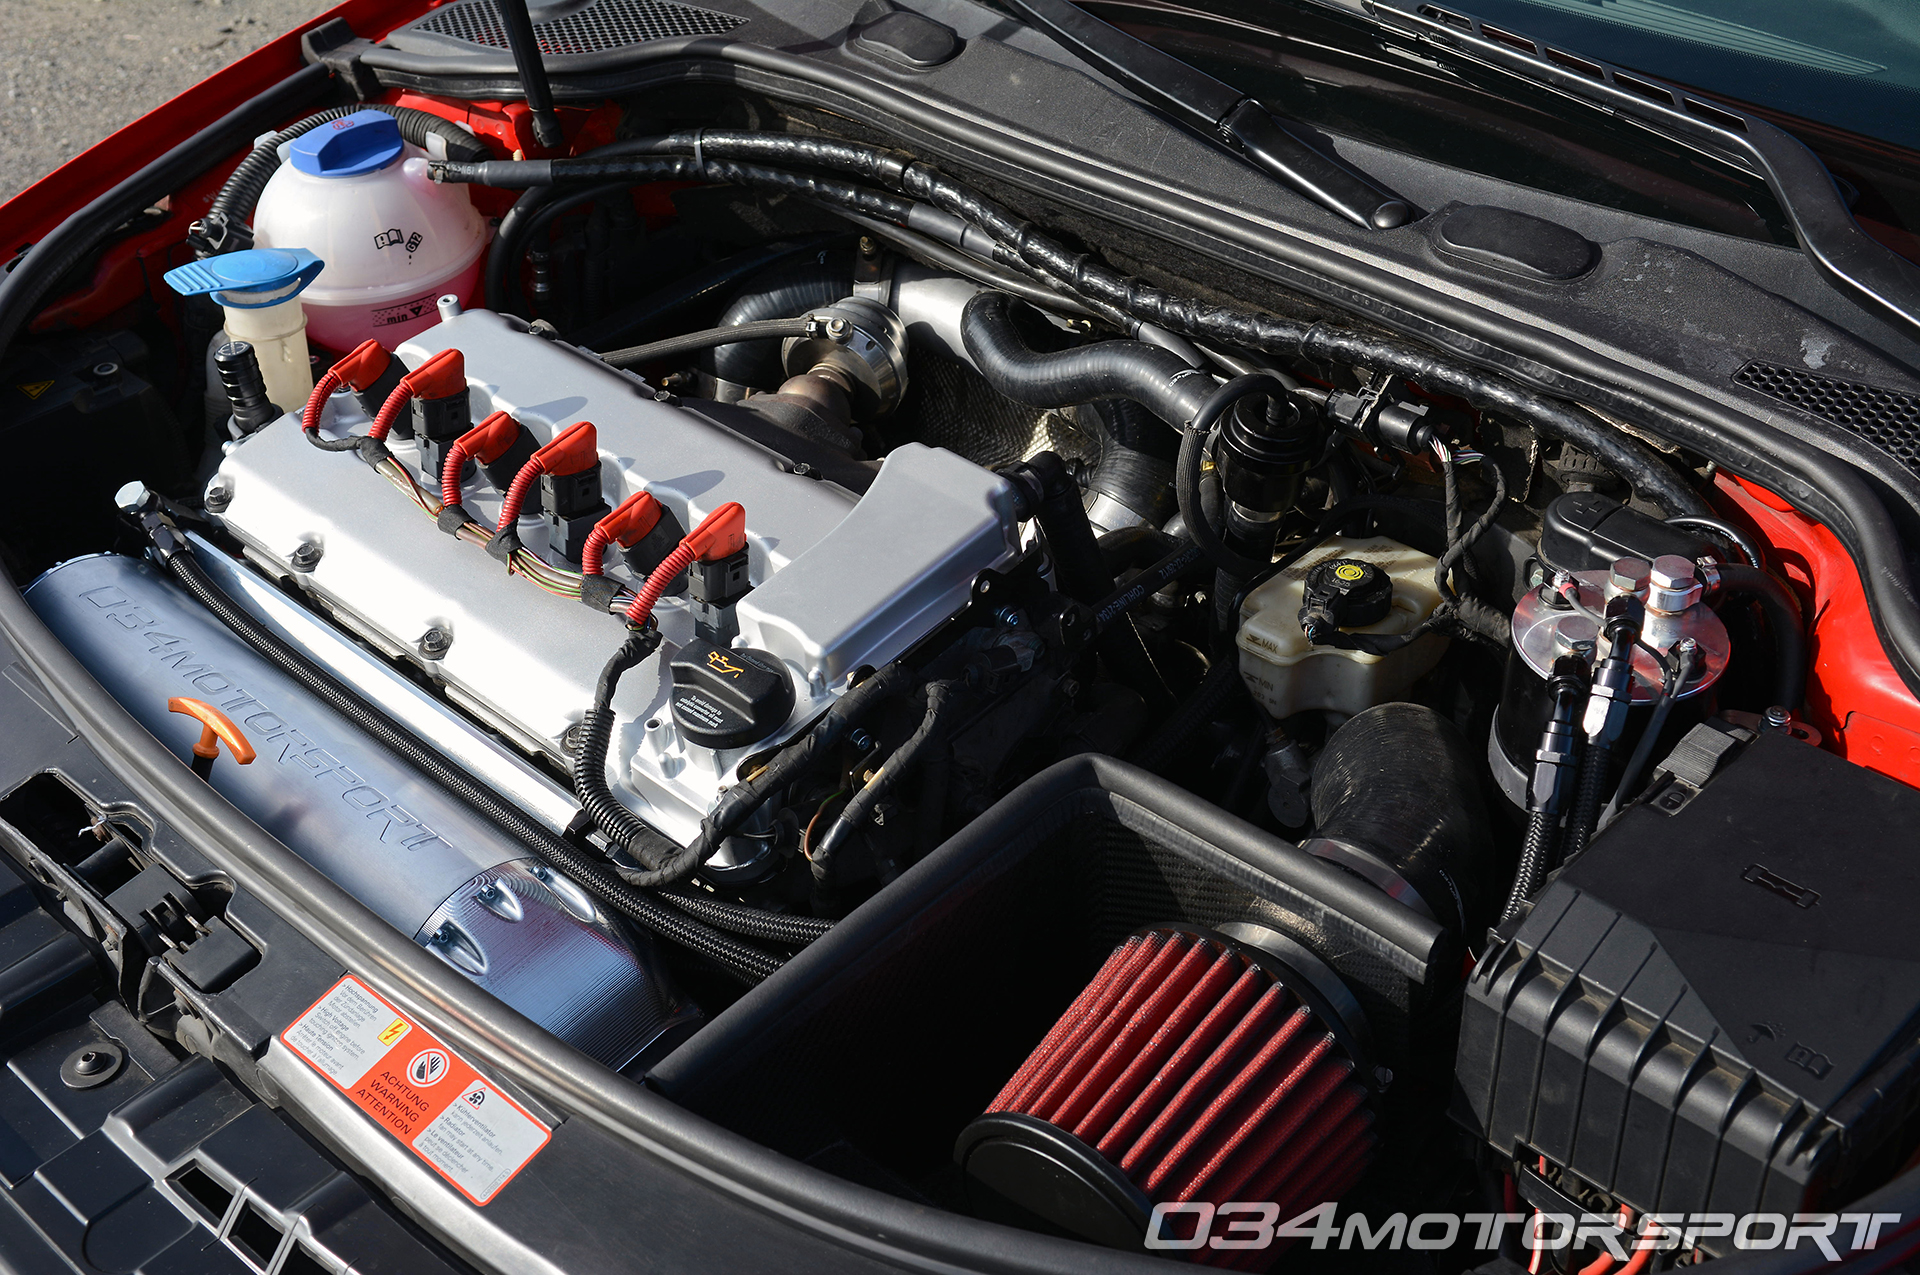 Nate 034 S Audi A3 3 2l Vr6 24v Turbo Kit By 034motorsport